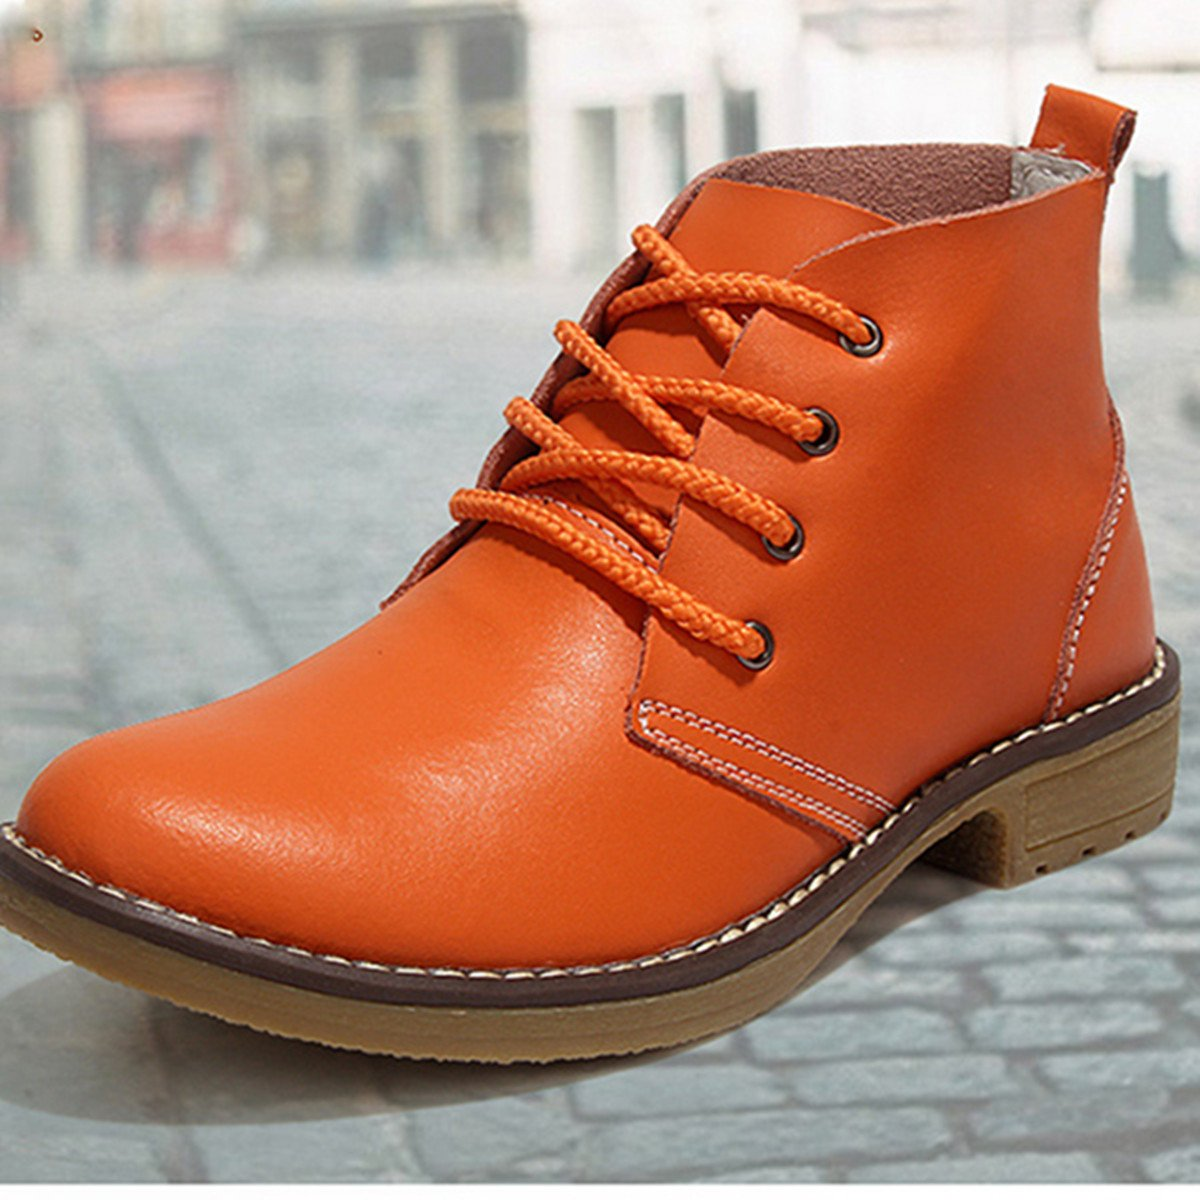 Gracosy Chukka Boot for Women, Female Faux Leather Lace Up Ankle Bootie Winter Shoes Snow Booties GRACOSYDOK89KO2918